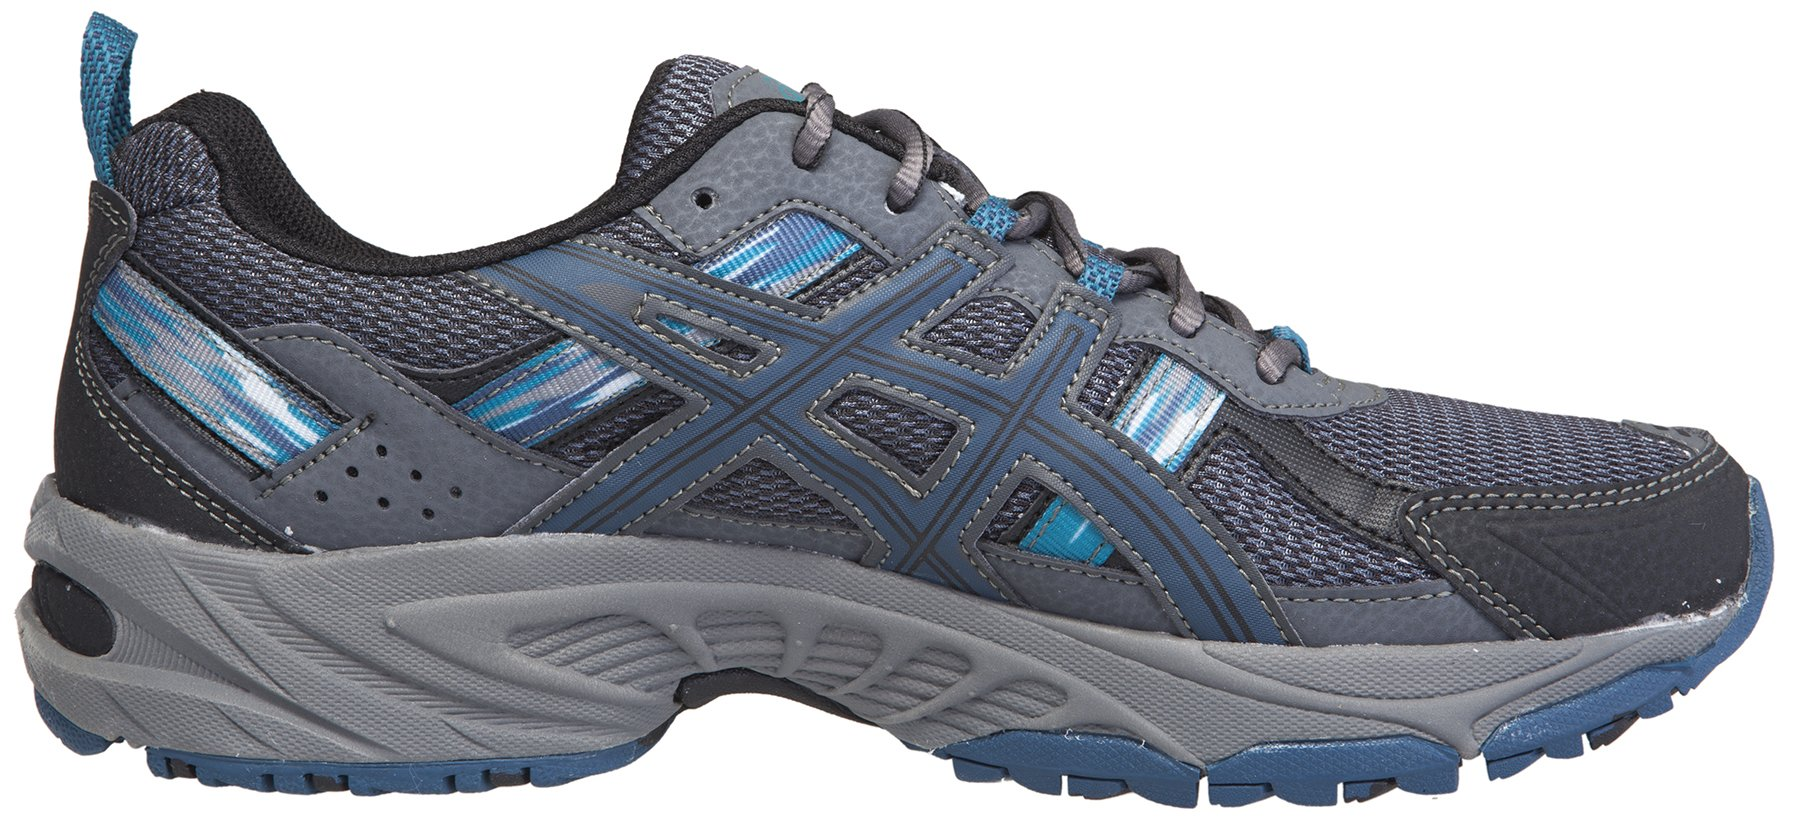 ASICS Men's Gel-Venture 5 Running Shoe (7.5 D(M) US, Black/Ink/Ocean) by ASICS (Image #3)